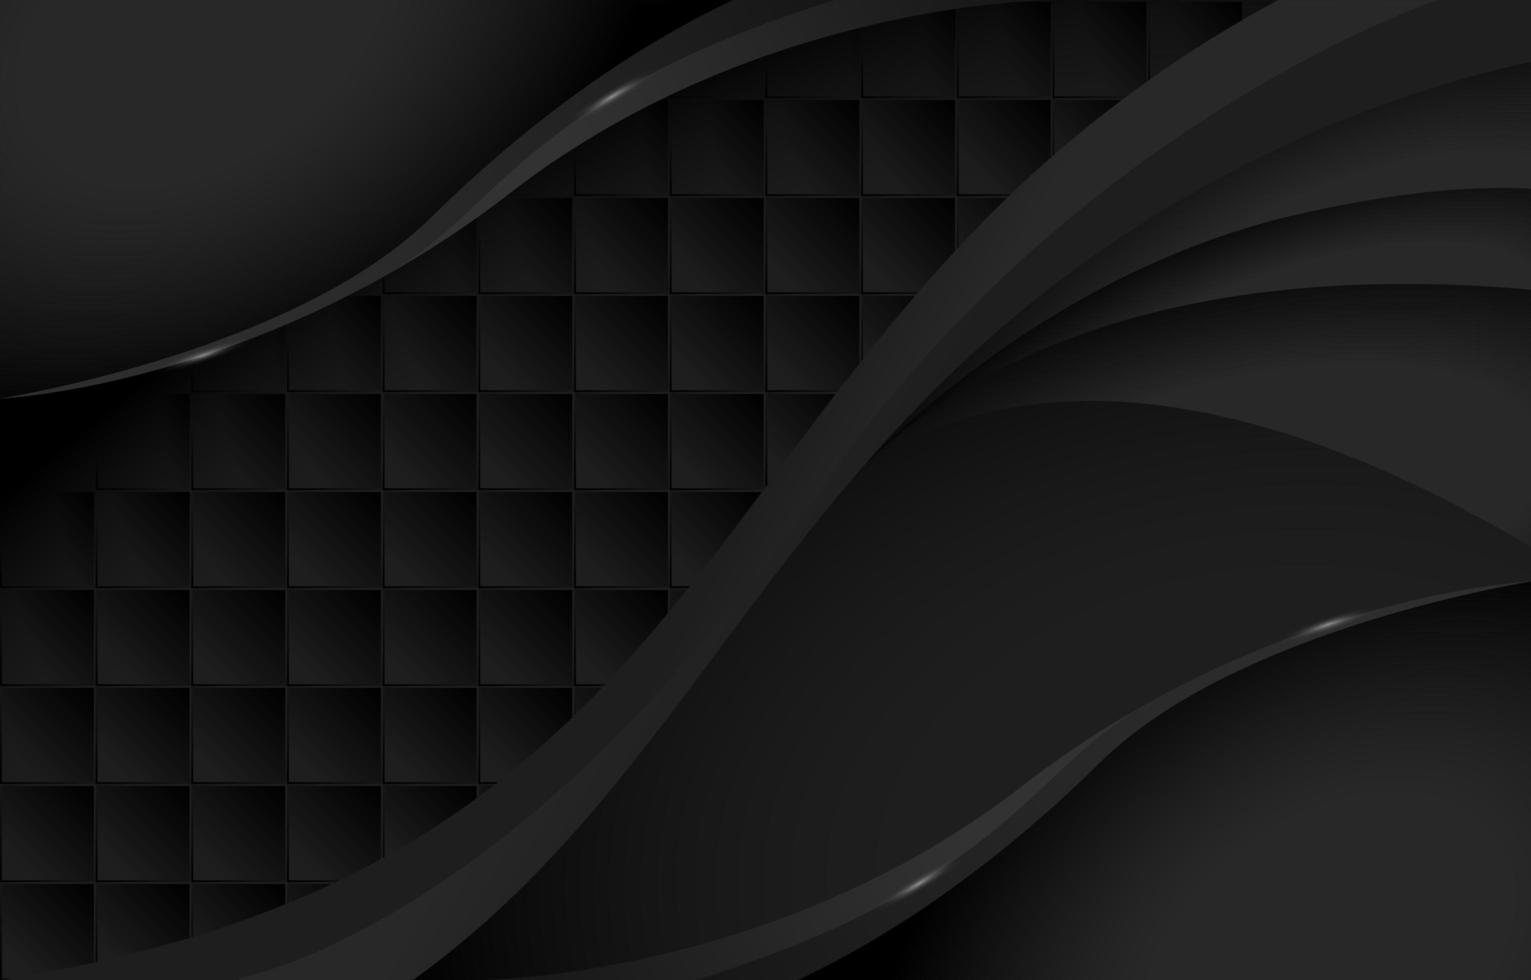 Gradient Black Waves and Square Tiles Pattern vector